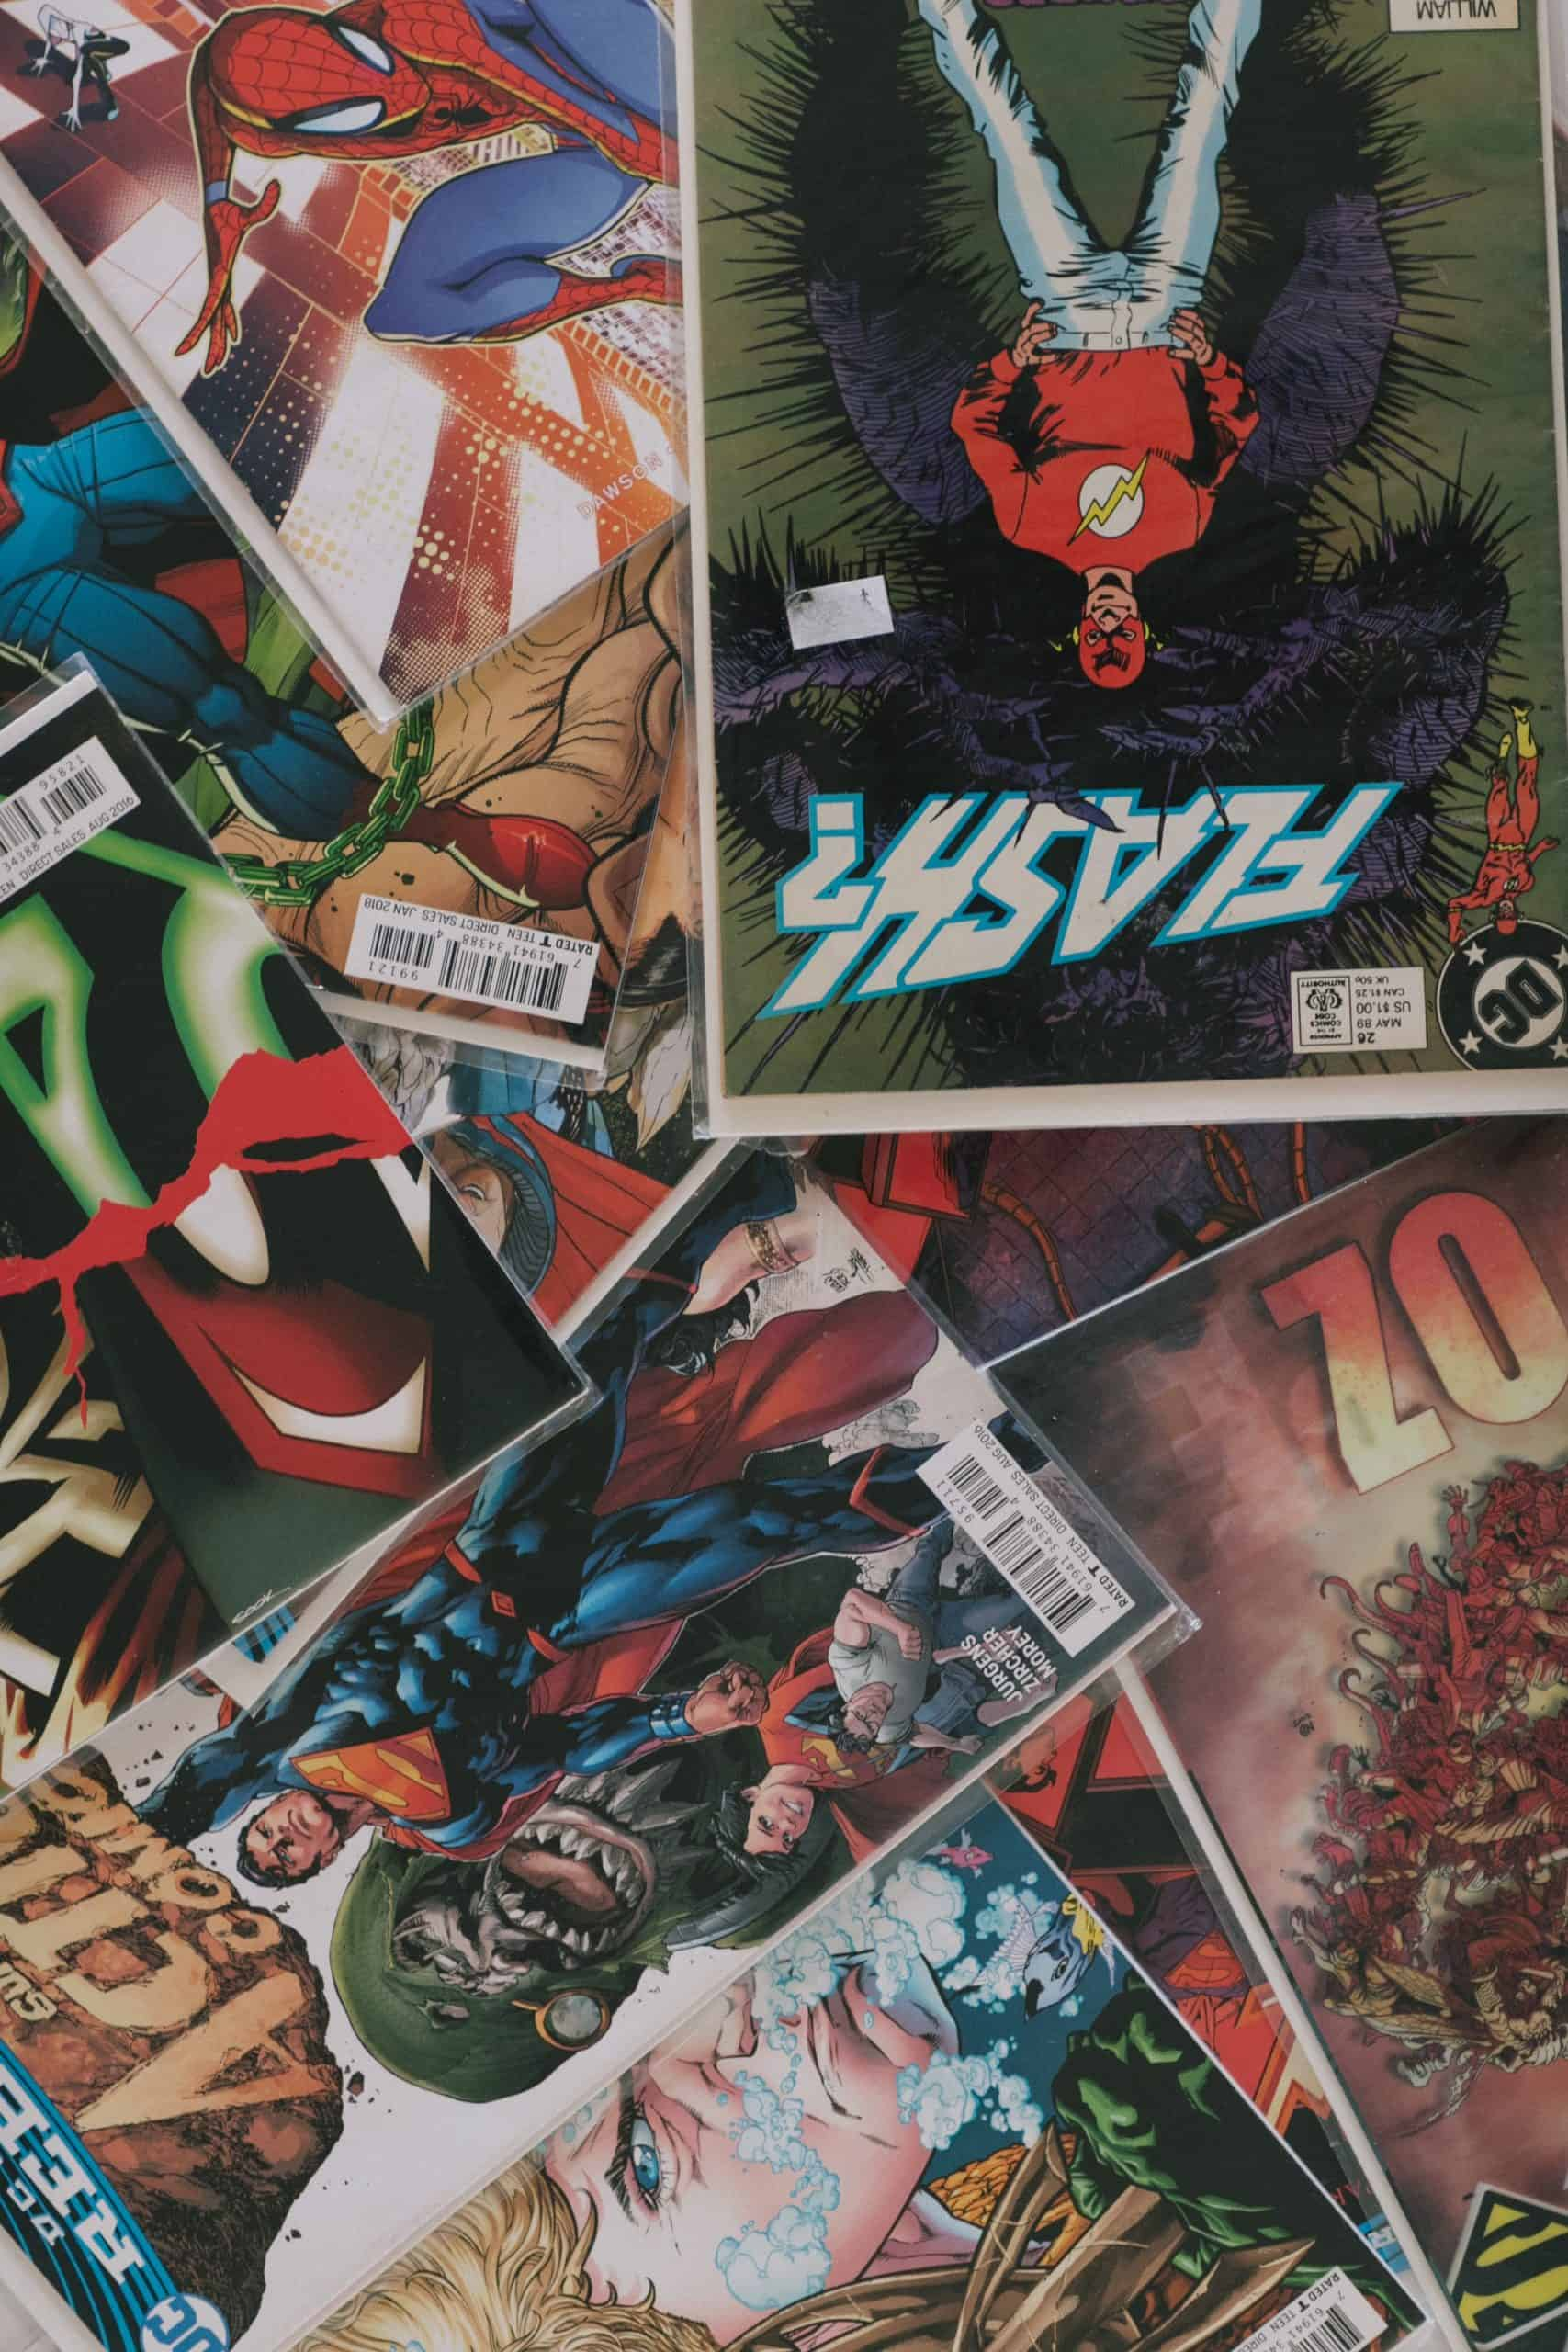 Marvel Storybook Starring Iron Man, Spiderman, and More!